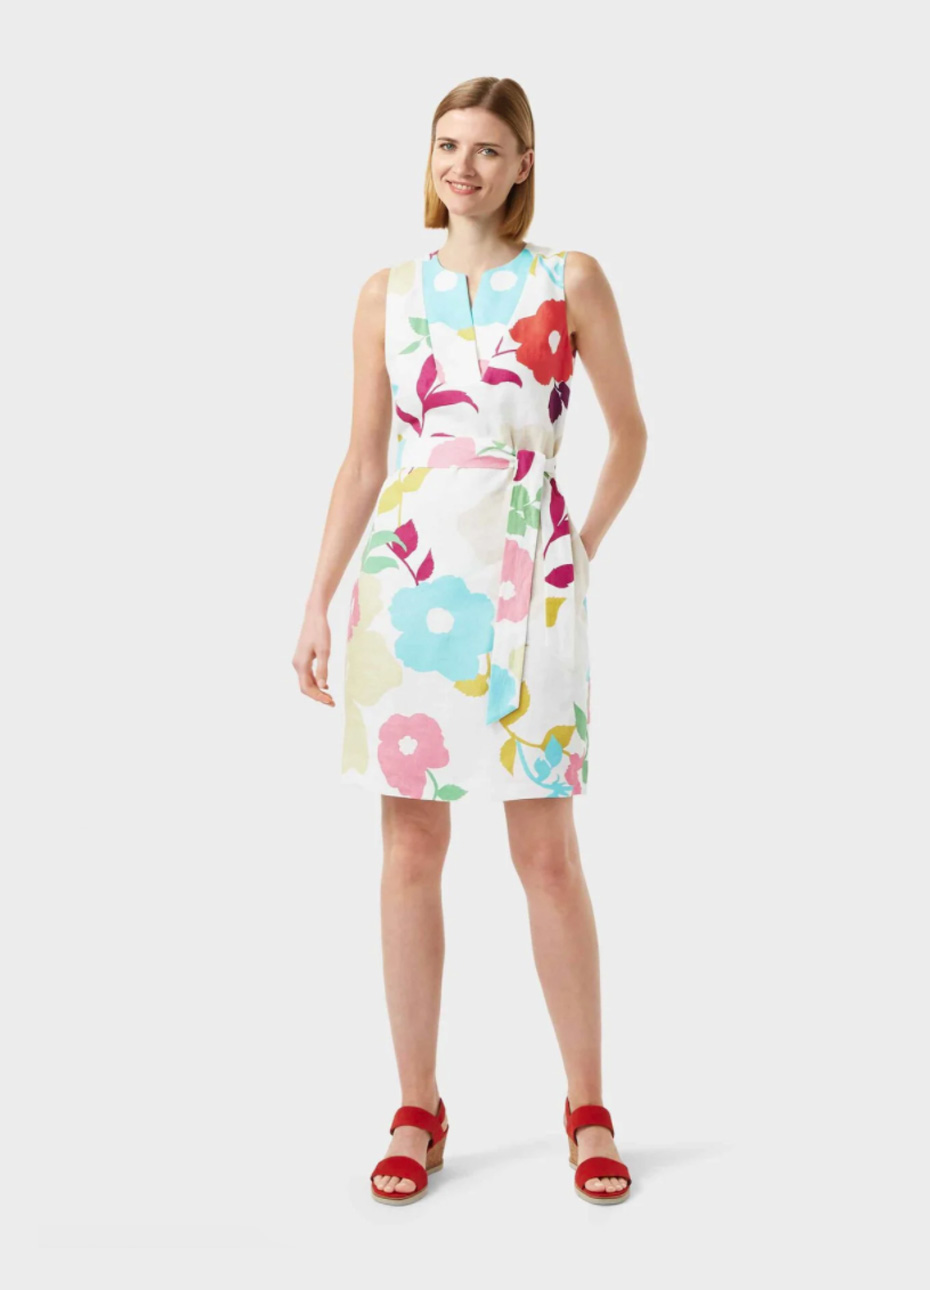 White shift dress with a multi-coloured floral pattern with a waist-tie paired with red block heel sandals by Hobbs.